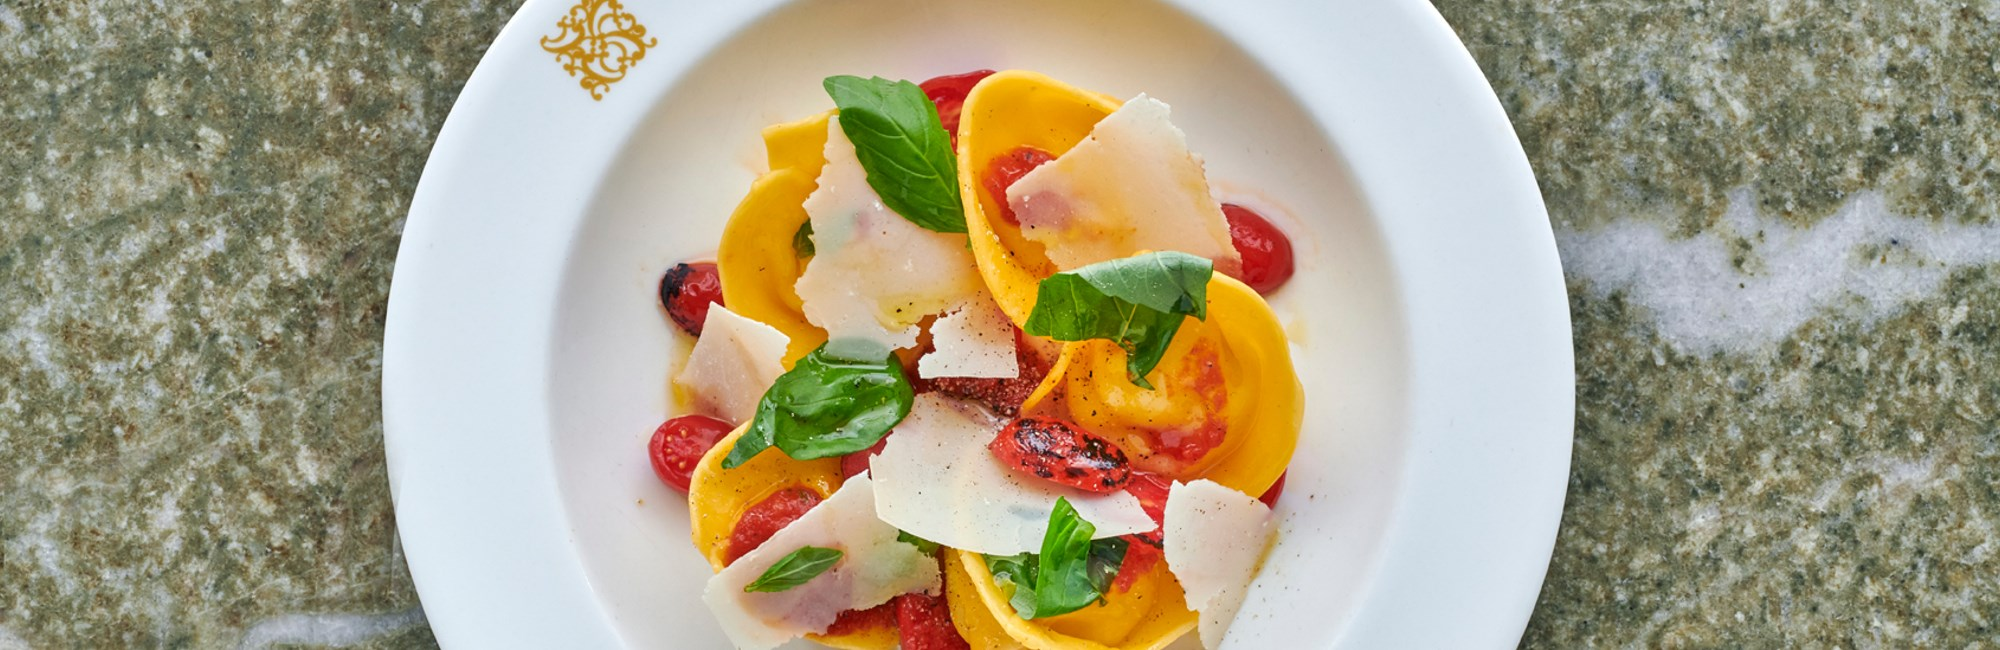 daphnes provola tortelloni with datterini basil